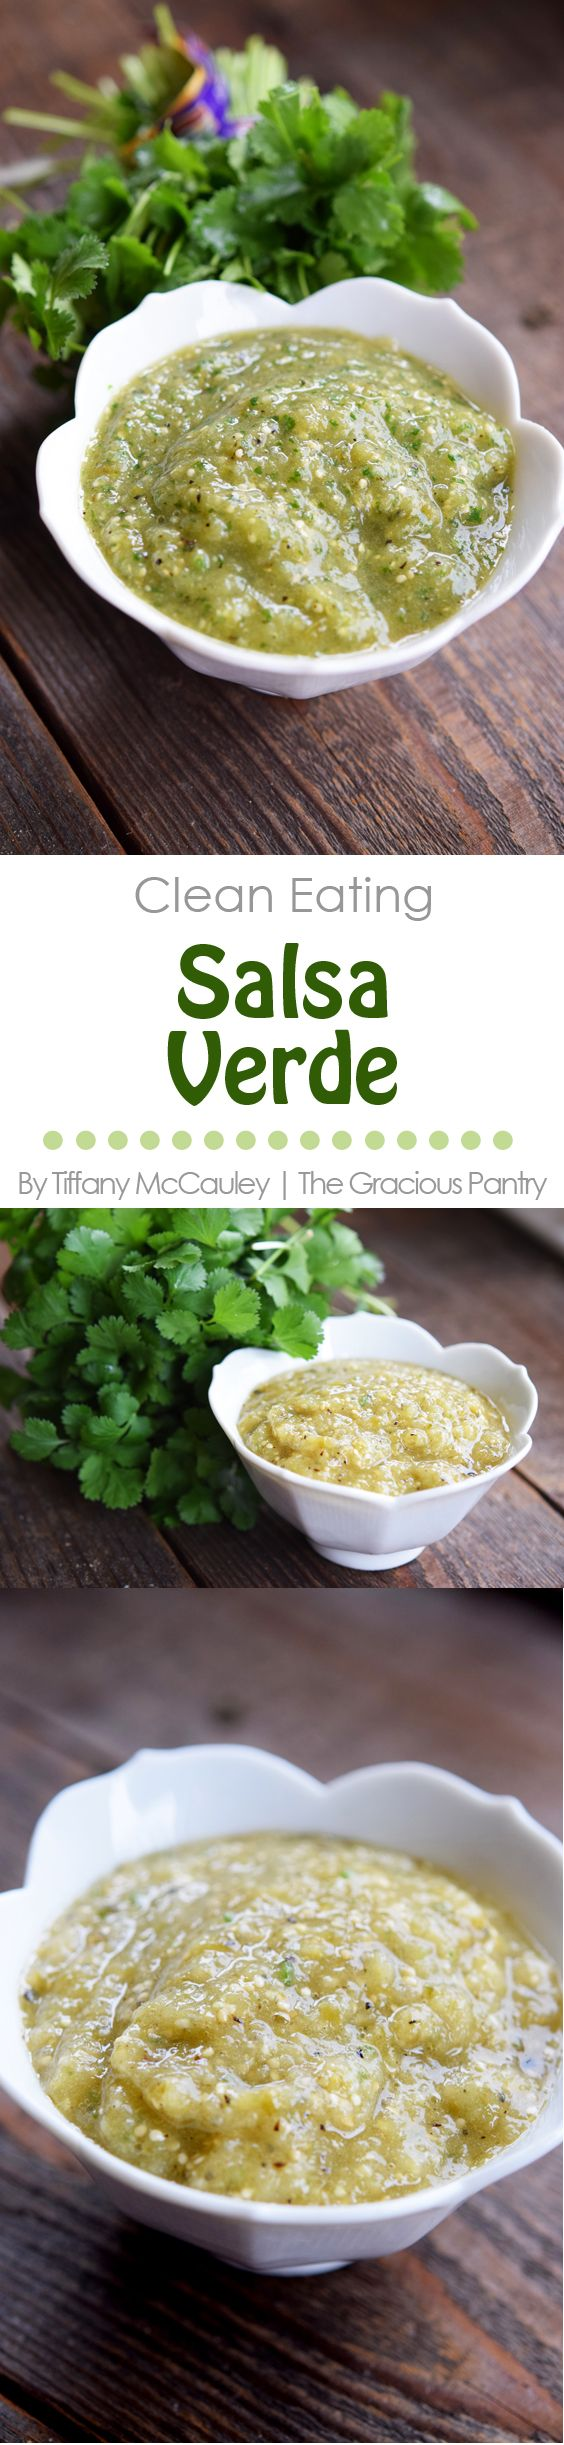 Clean Eating Recipes | Salsa Verde Recipe | Clean Eating Salsa Recipes ~ http://www.thegraciouspantry.com